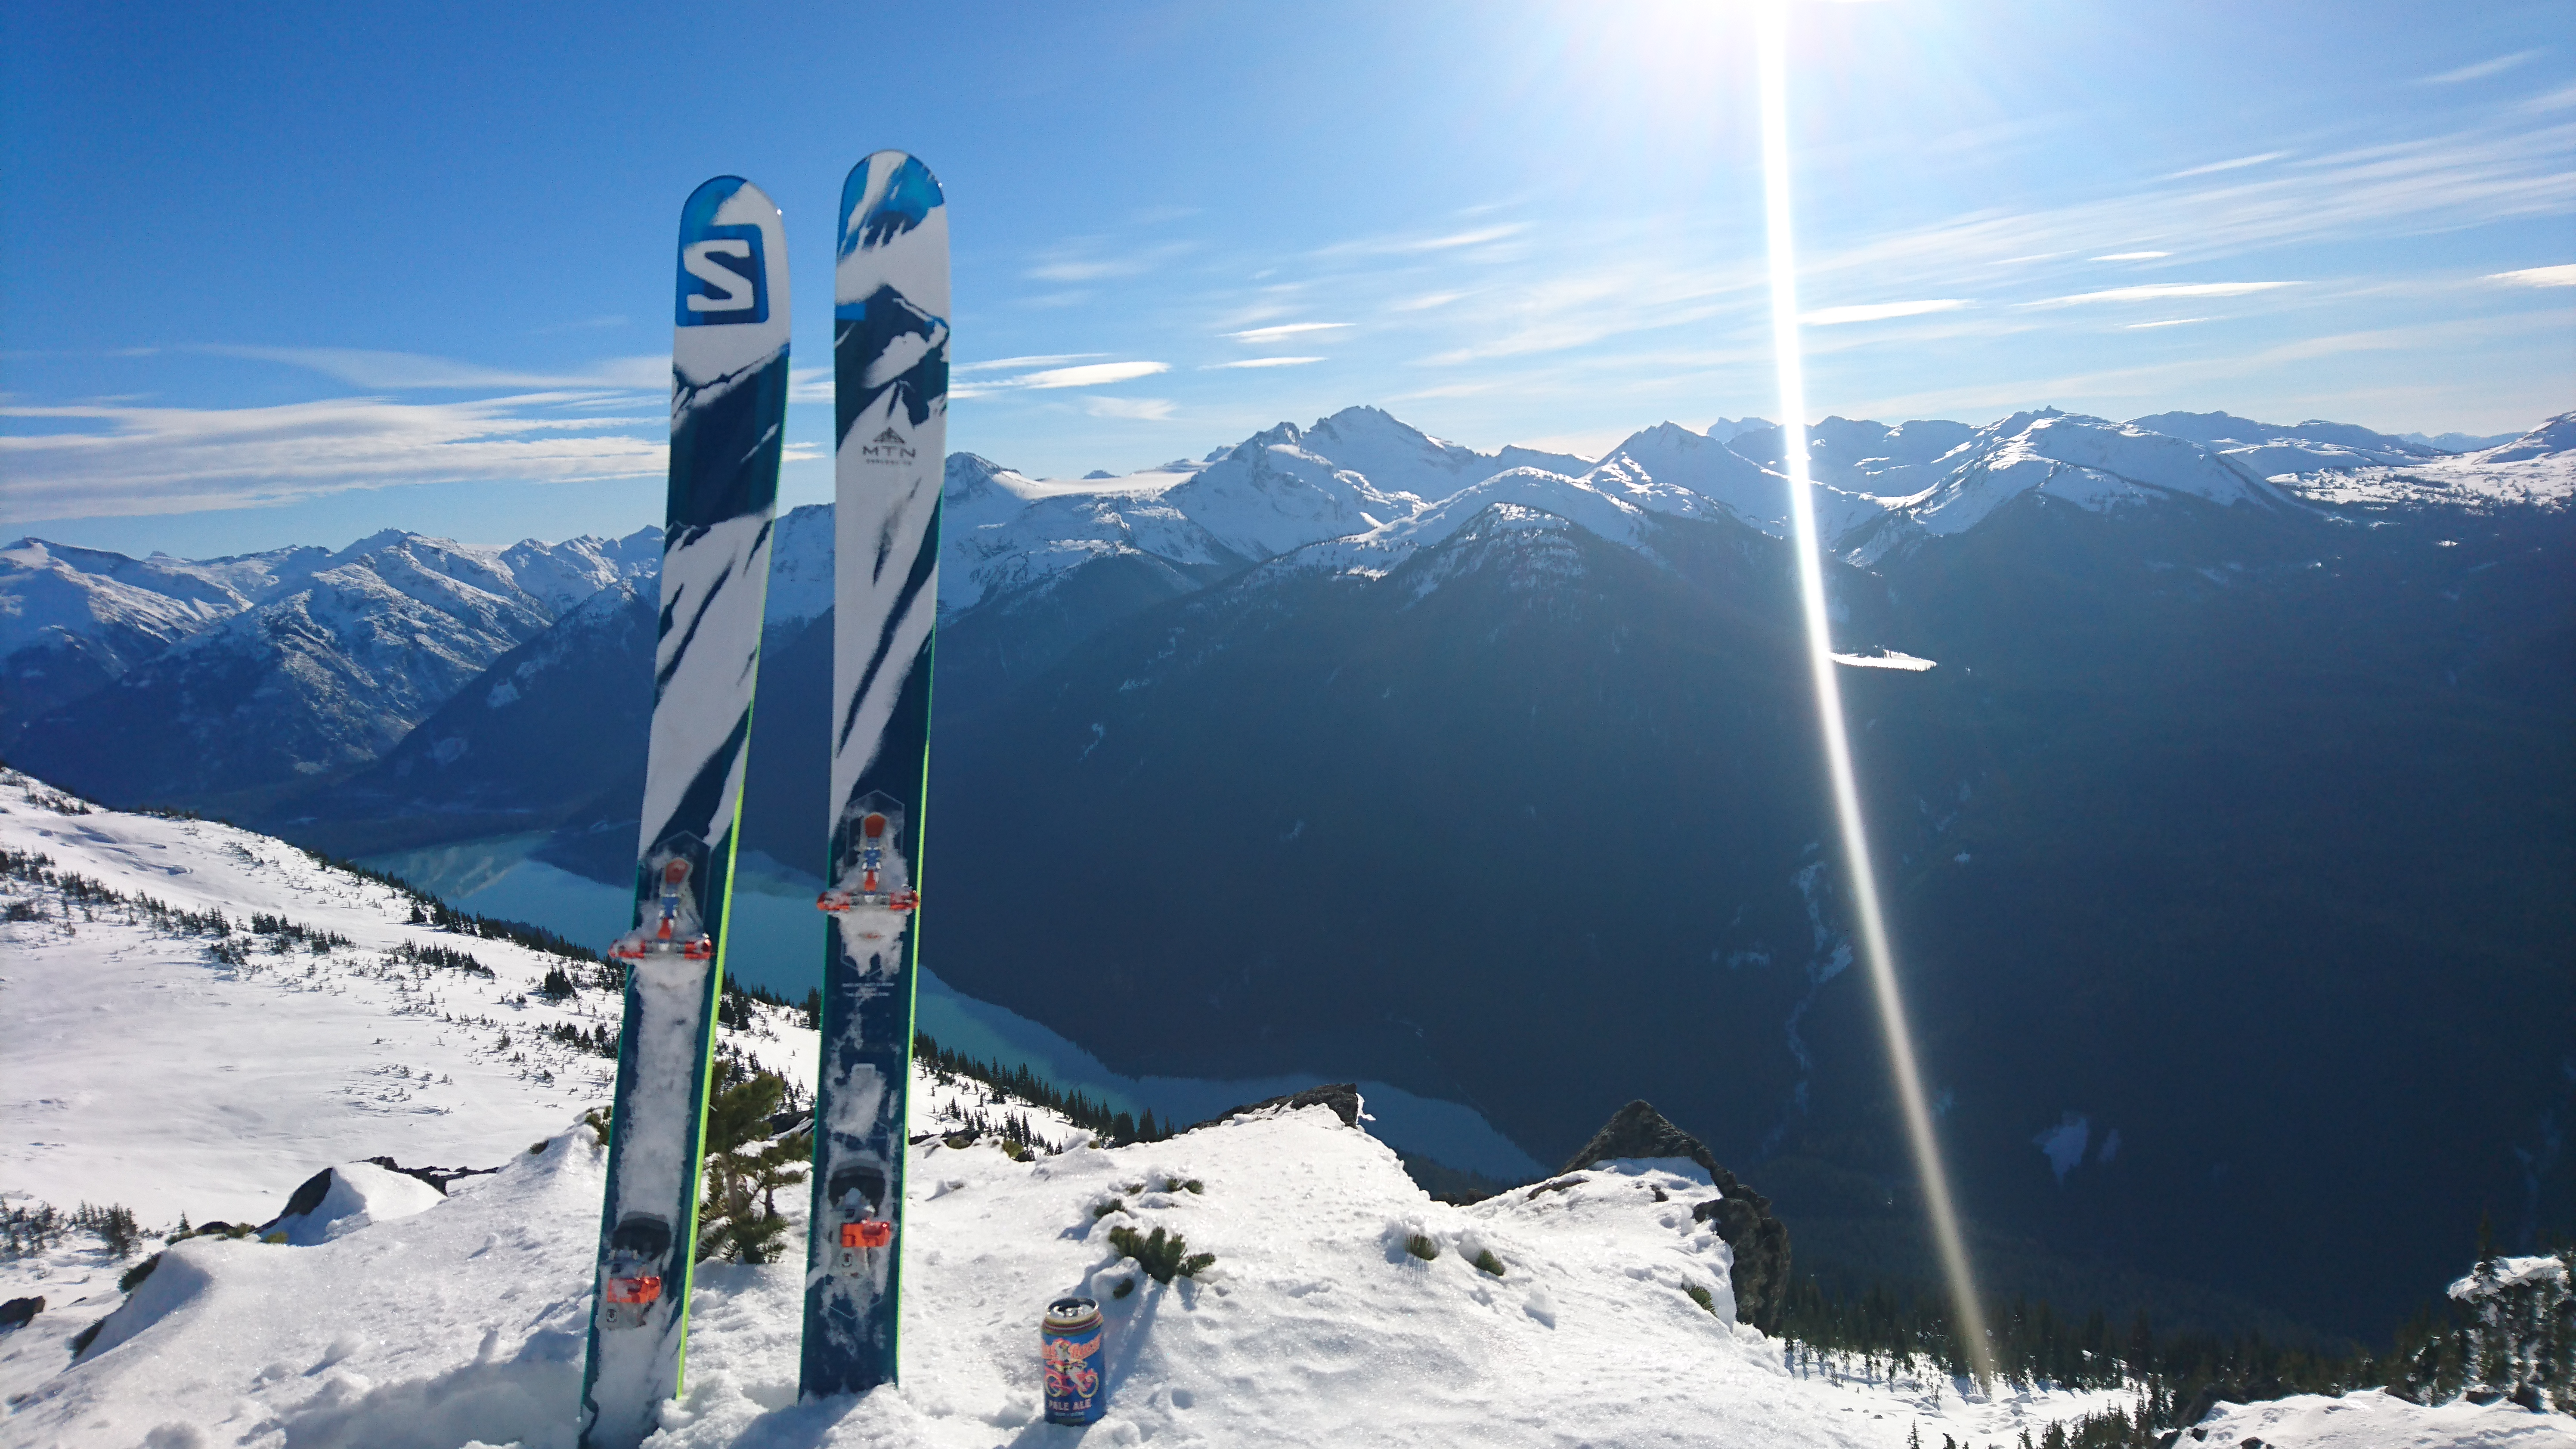 High pressure ain't all bad... especially with these skis